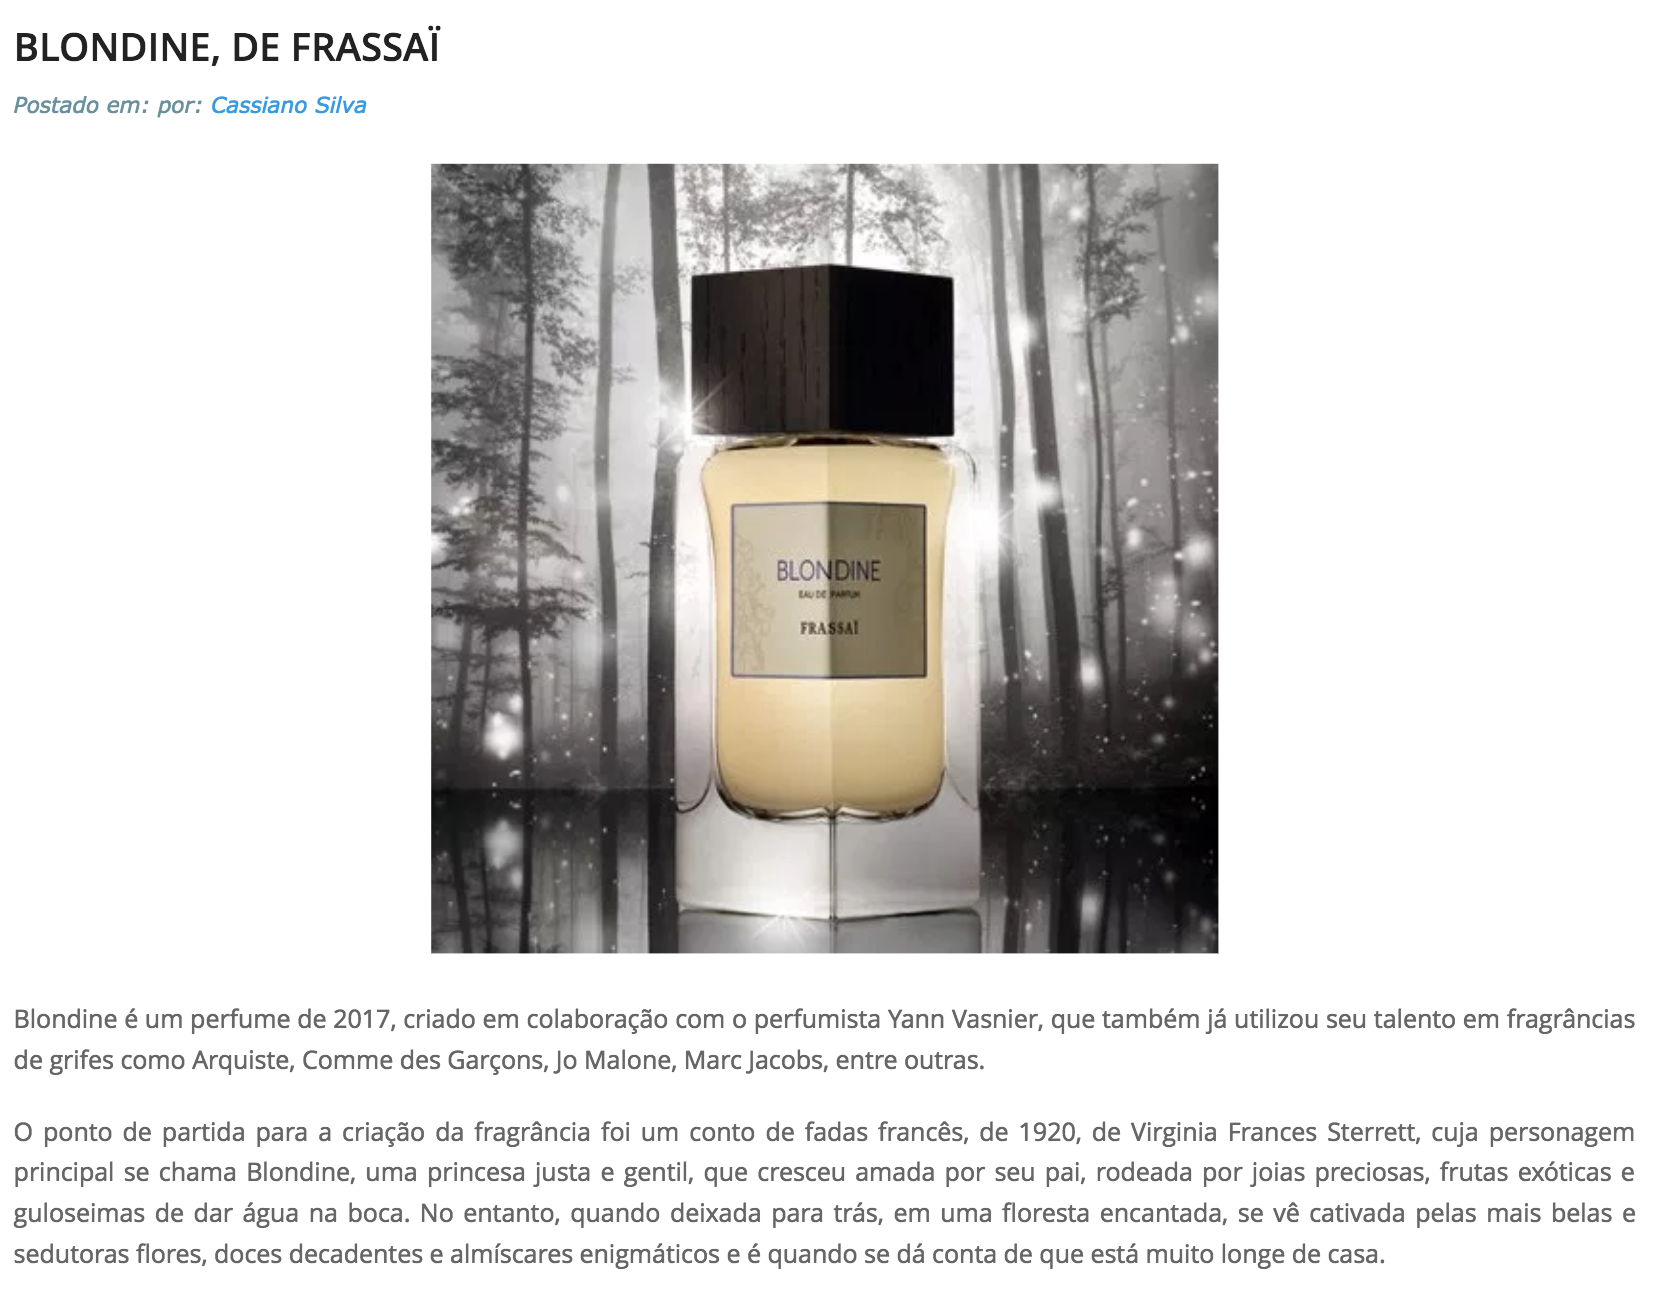 Frassai Blondine fragrance review by Perfumart Brazil